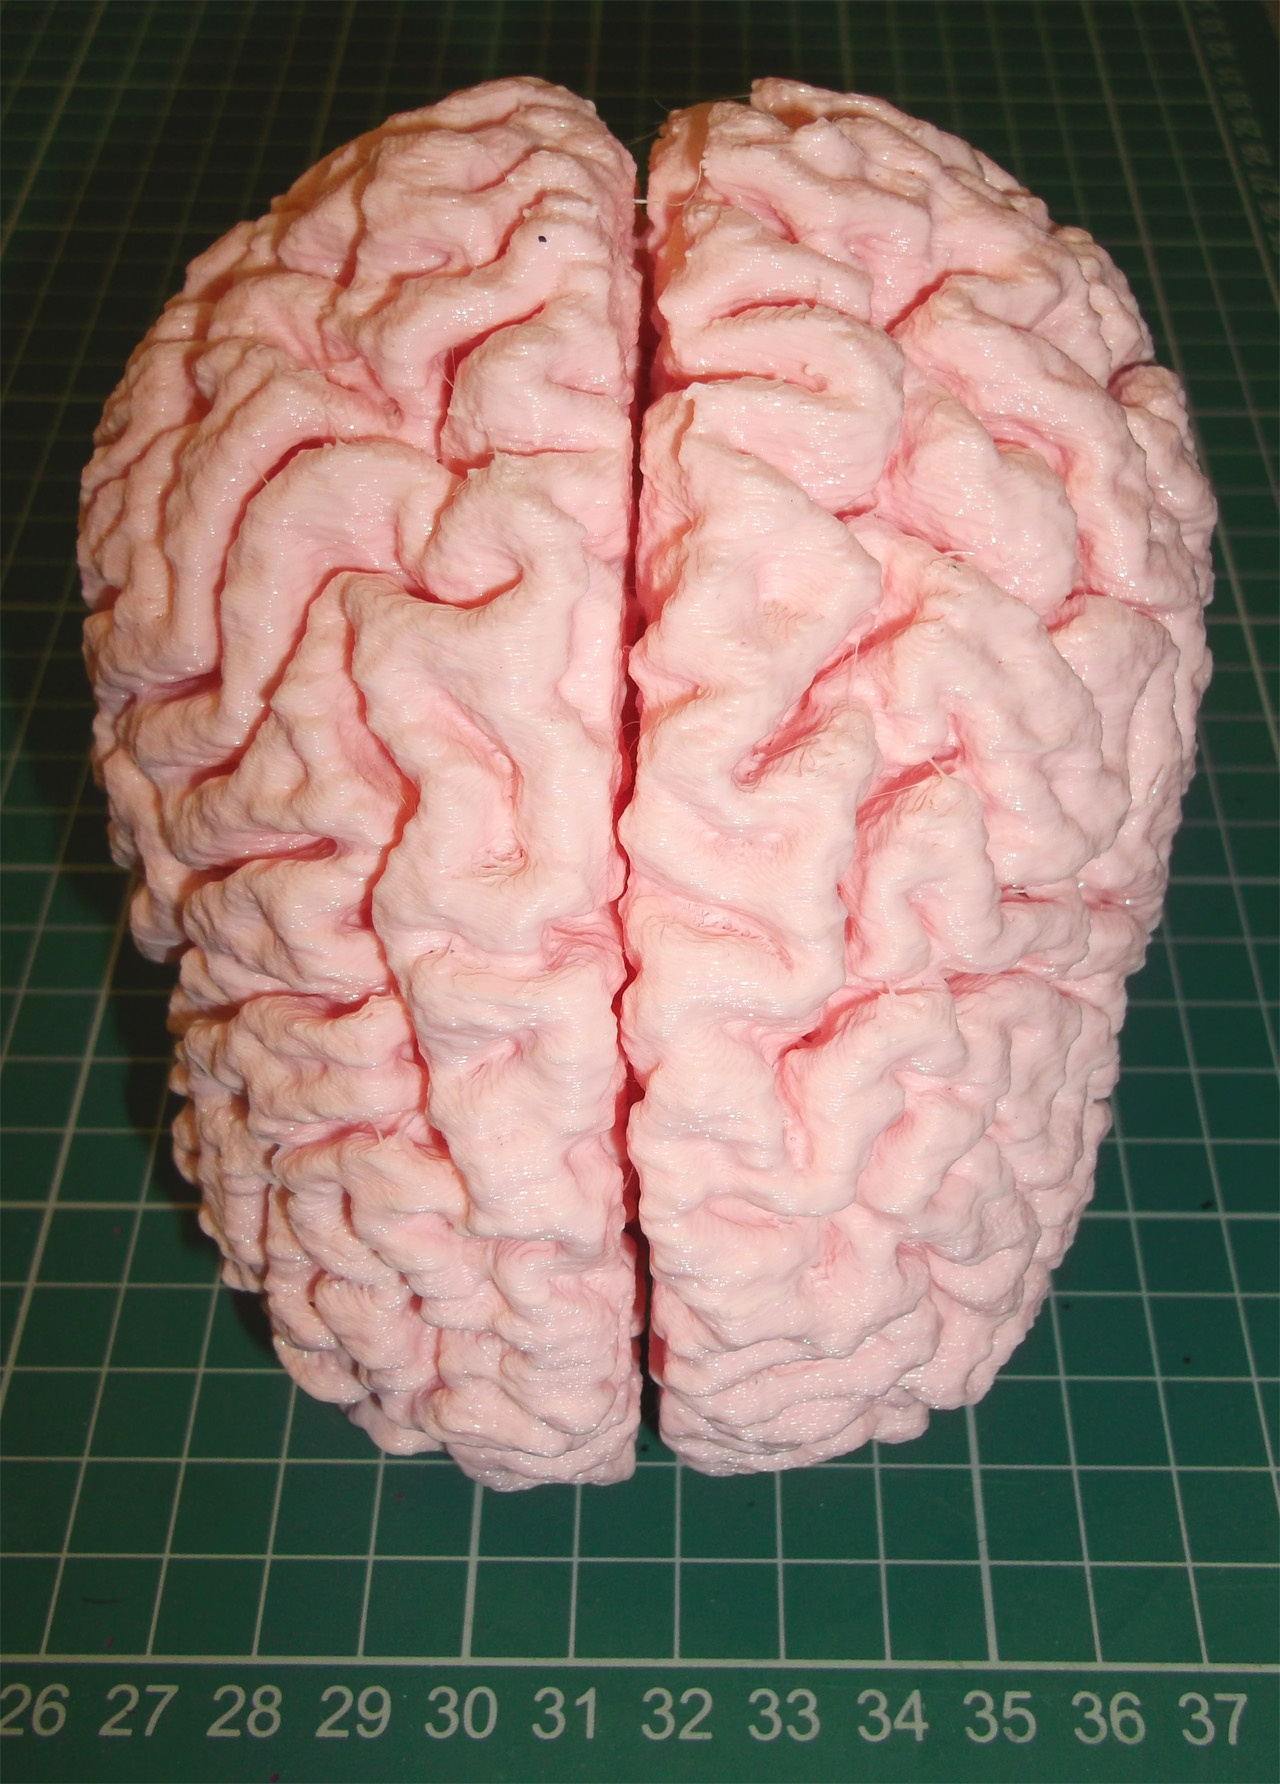 Image of human brain thingiverse for 15 metrotech center 7th floor brooklyn ny 11201